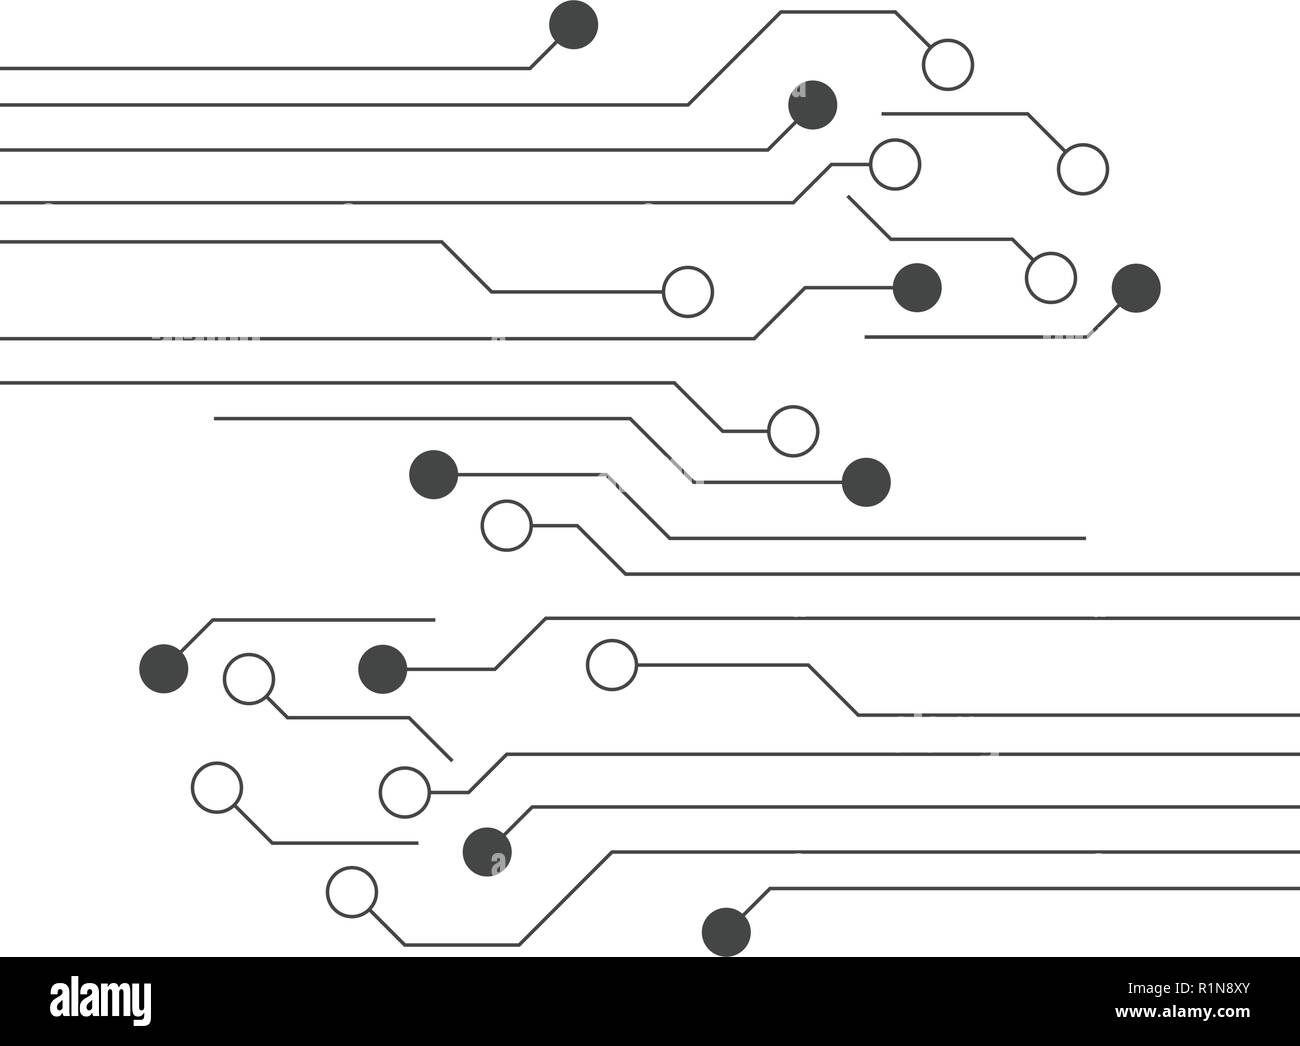 Electronic Circuit Vector Vectors Black And White Stock Photos Integrated Circuitelectronic Ic Buy Circuitpcb Graphic Design Template Image